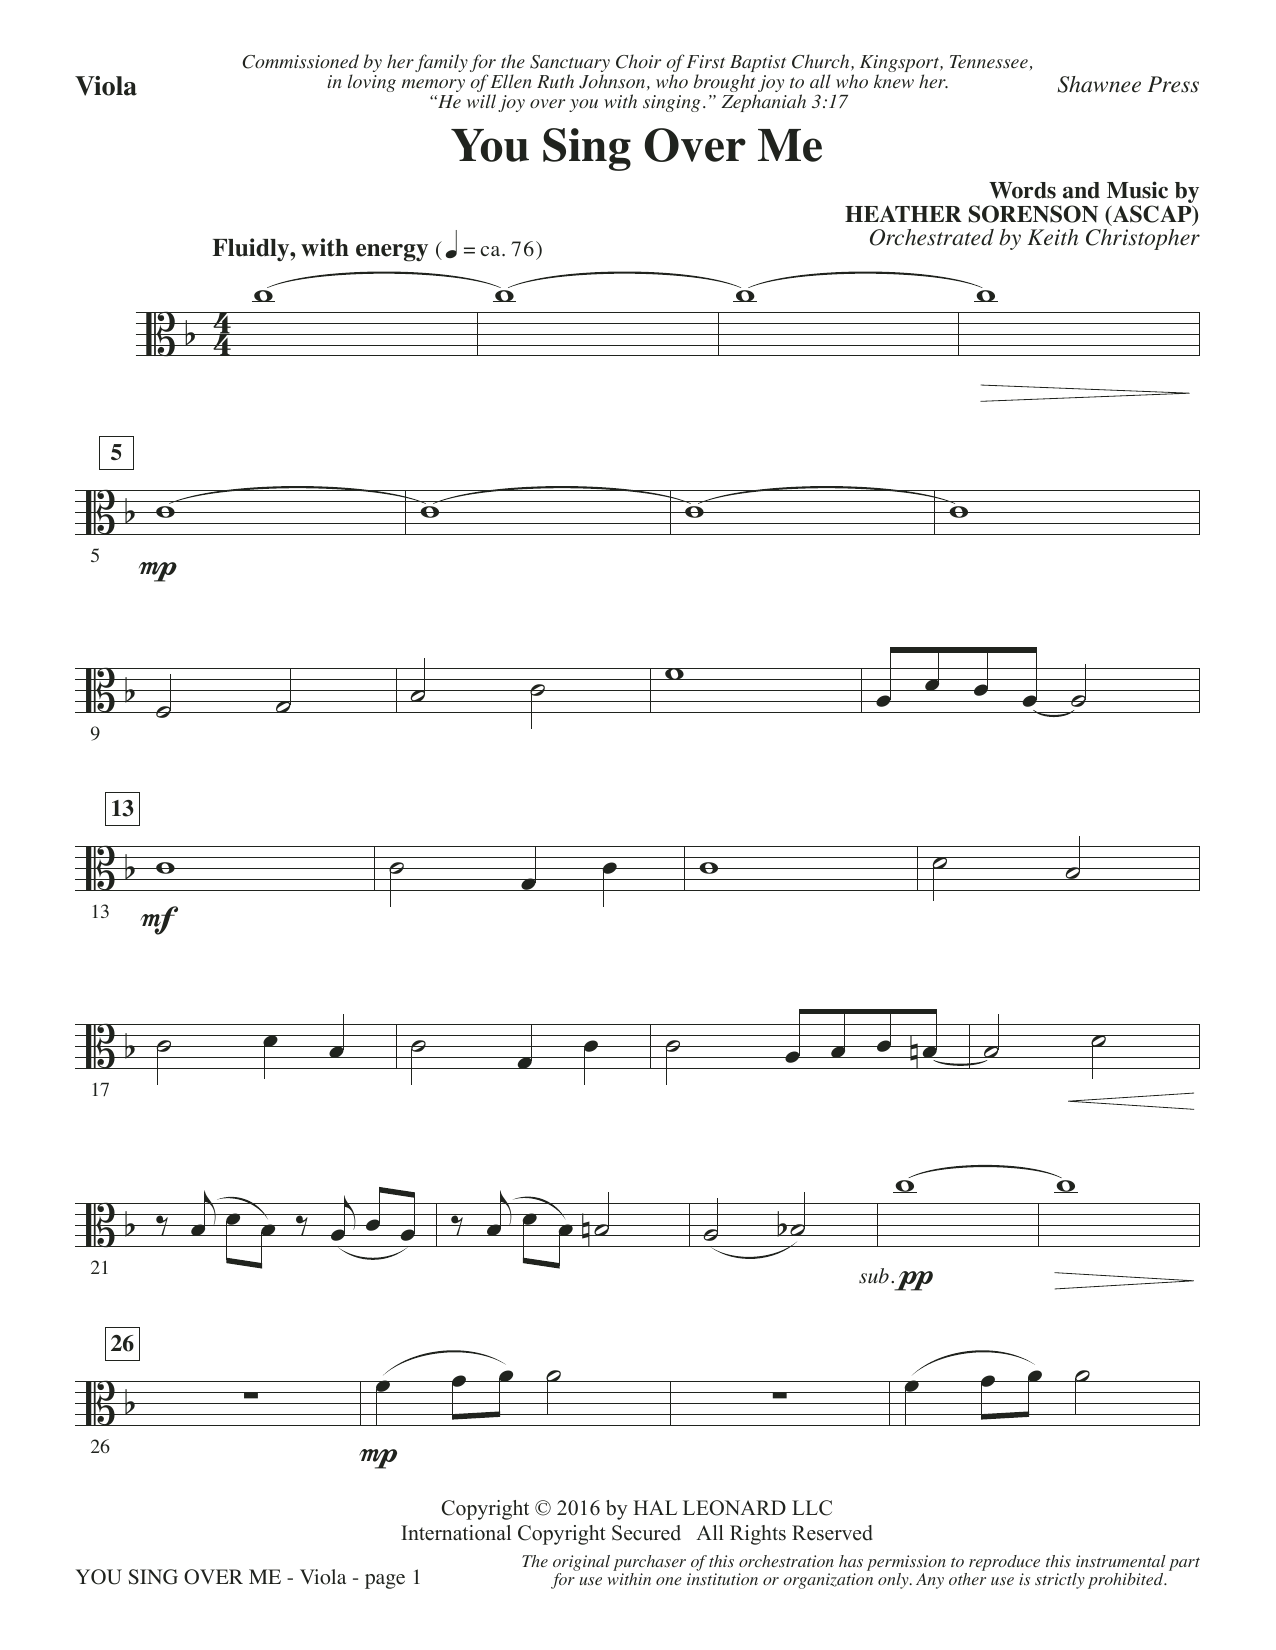 You Sing Over Me - Viola Sheet Music